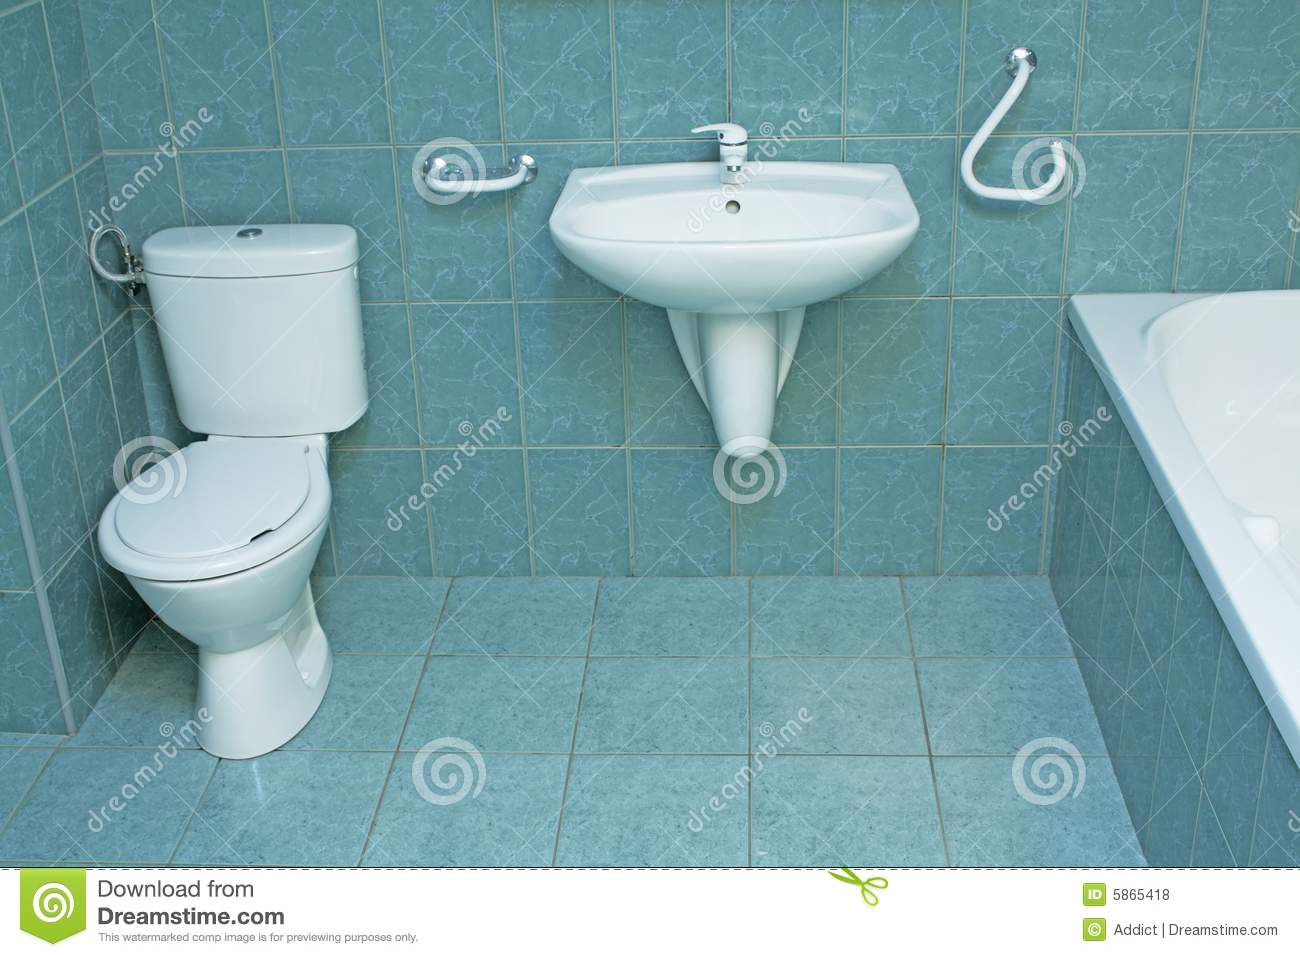 Modern Bathroom With Green Floor Tiles Stock Photo Image of